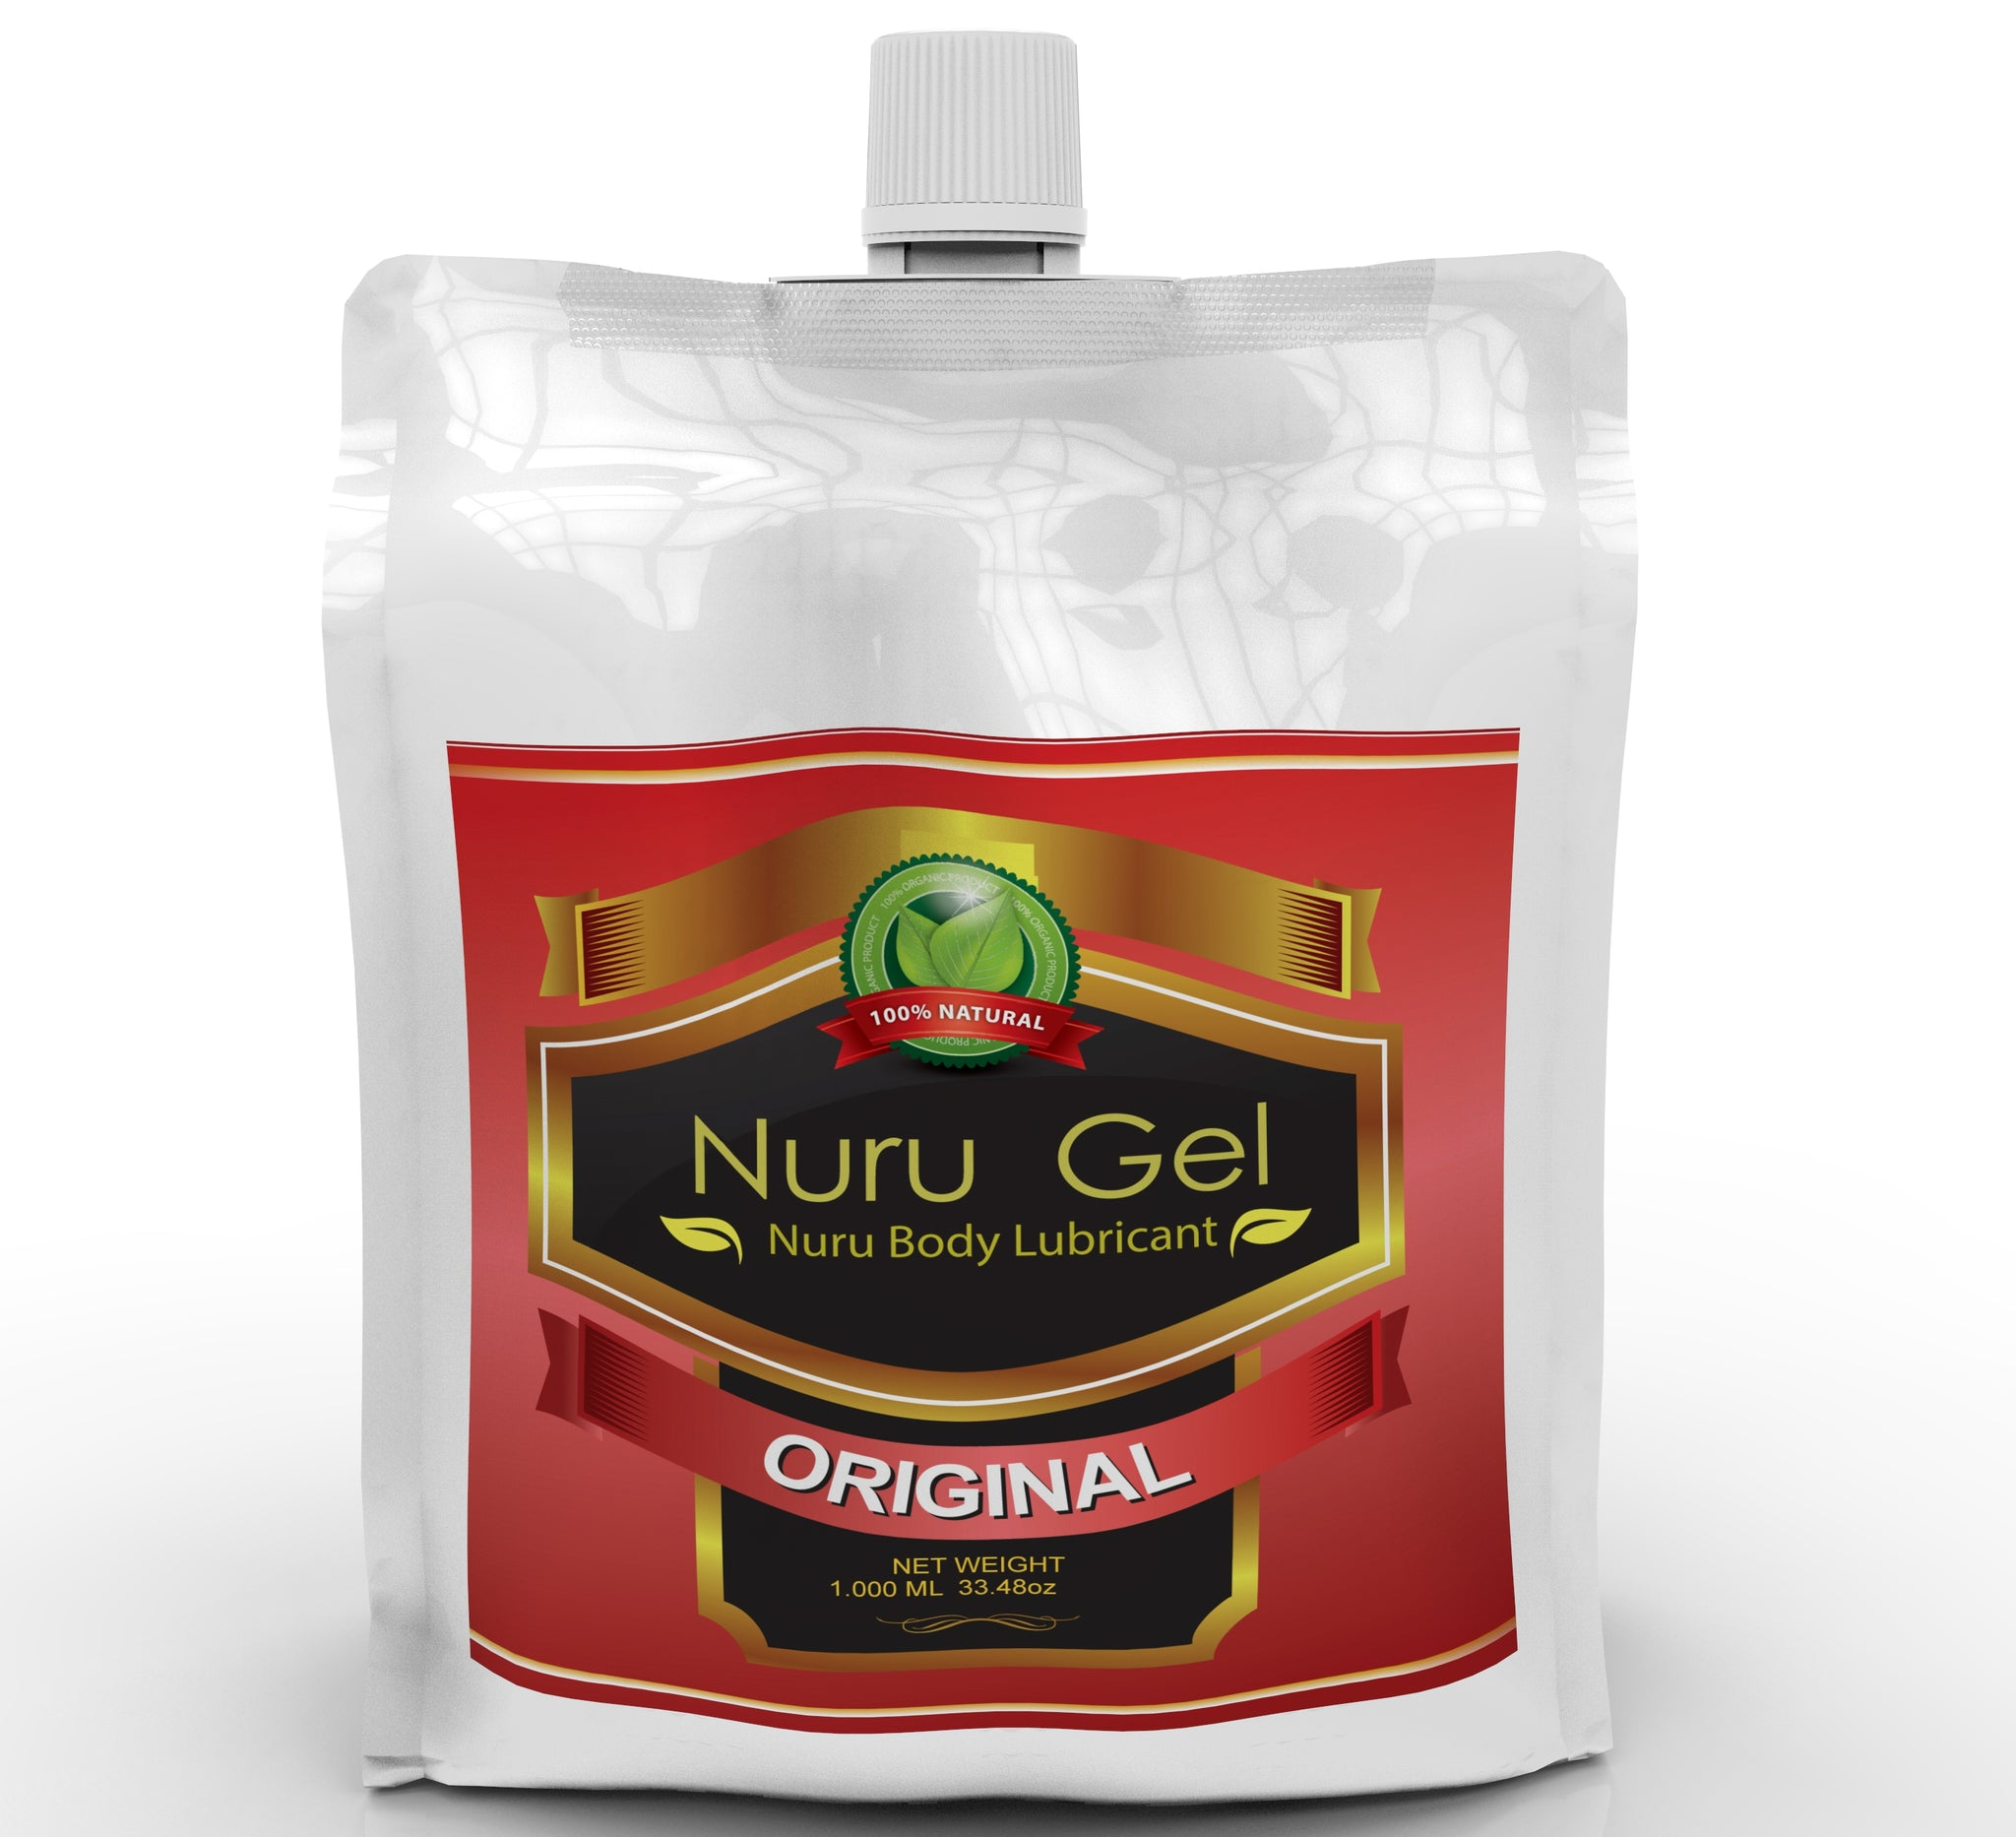 Nuru gel 33.48 ounce